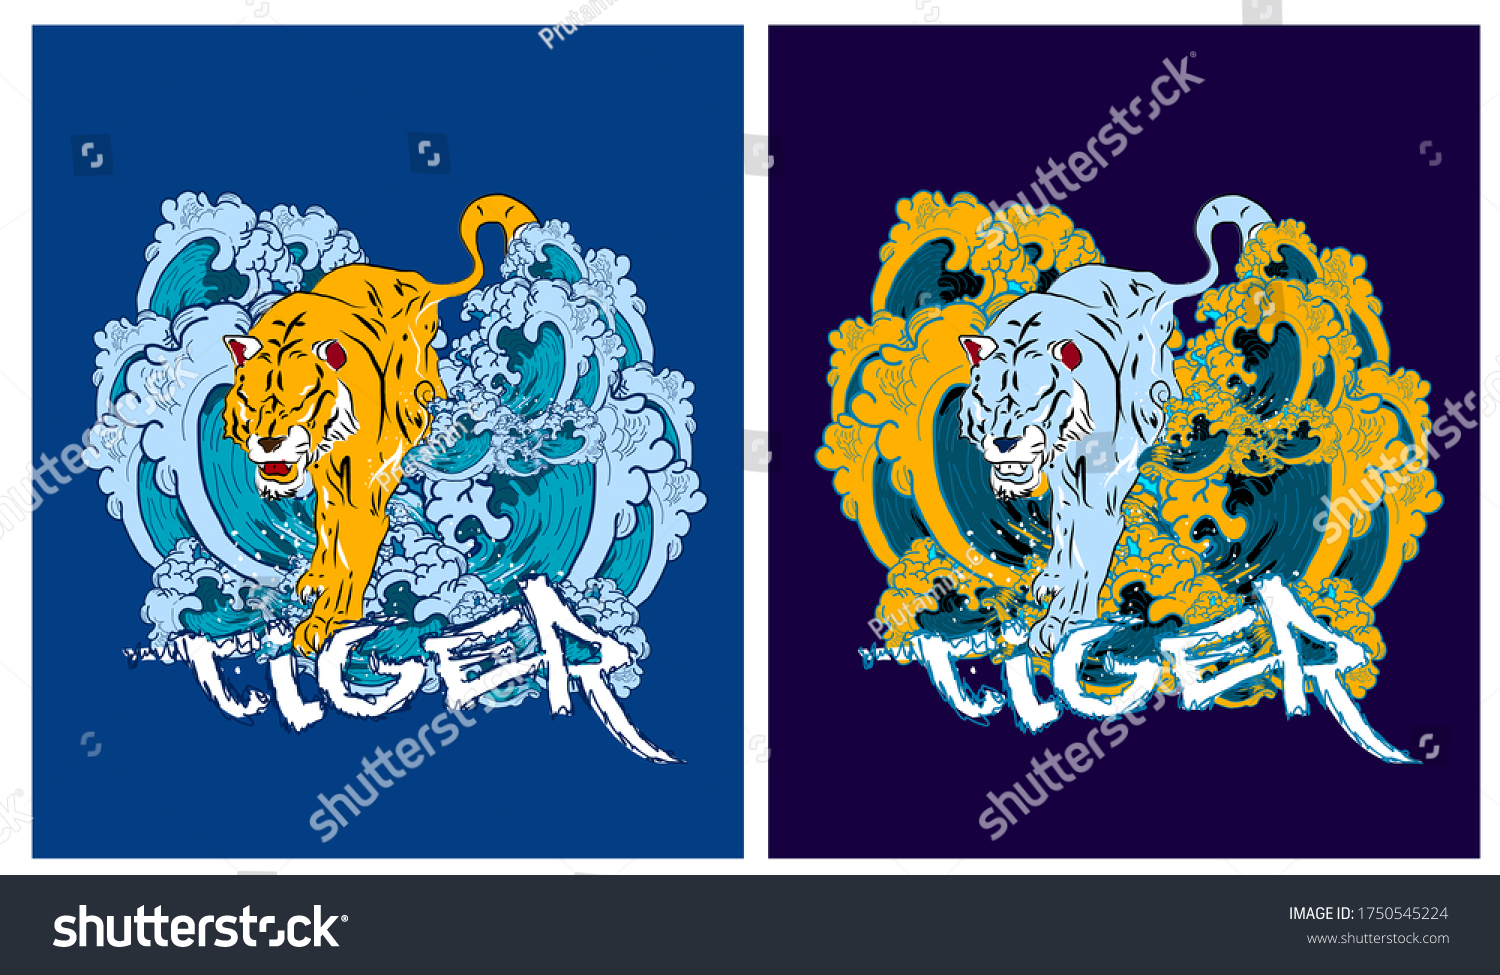 Sumatran tiger illustration design for sukajan is mean japan traditional cloth or t-shirt with digital hand drawn Embroidery Men T-shirts Summer Casual Short Sleeve Hip Hop T Shirt Streetwear